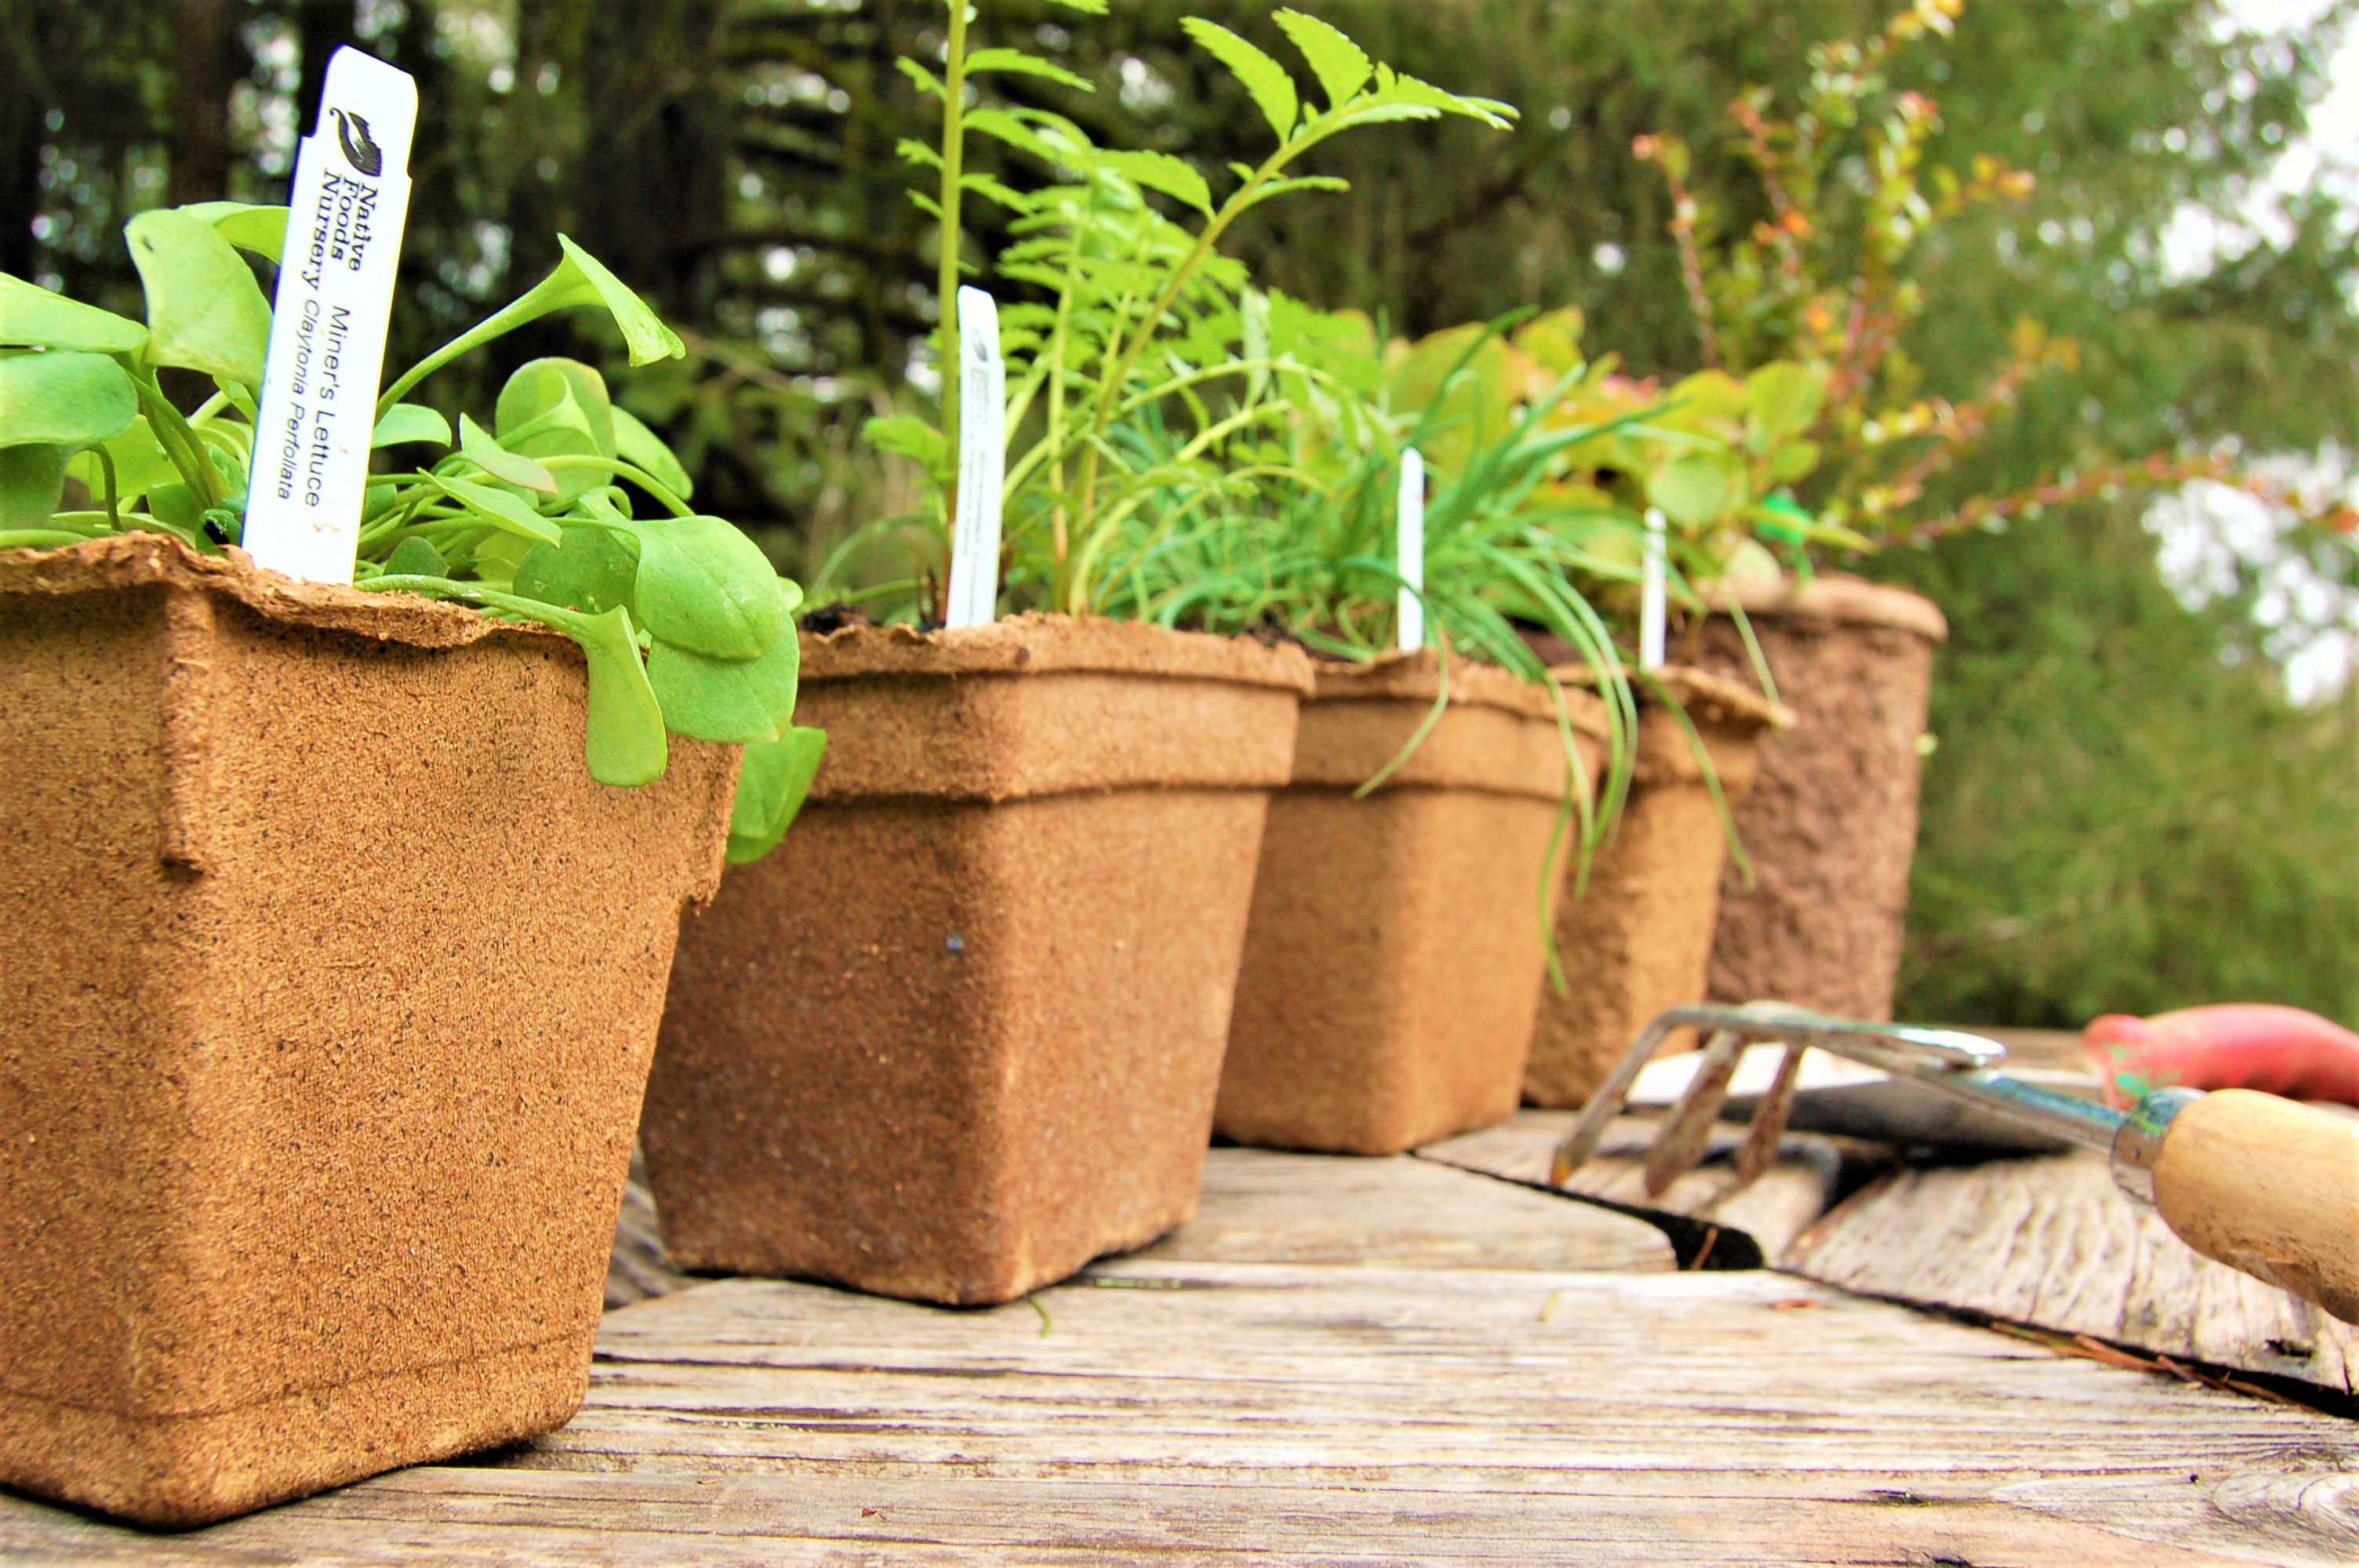 pot-sizes-picture-side-view-small-to-large.jpg